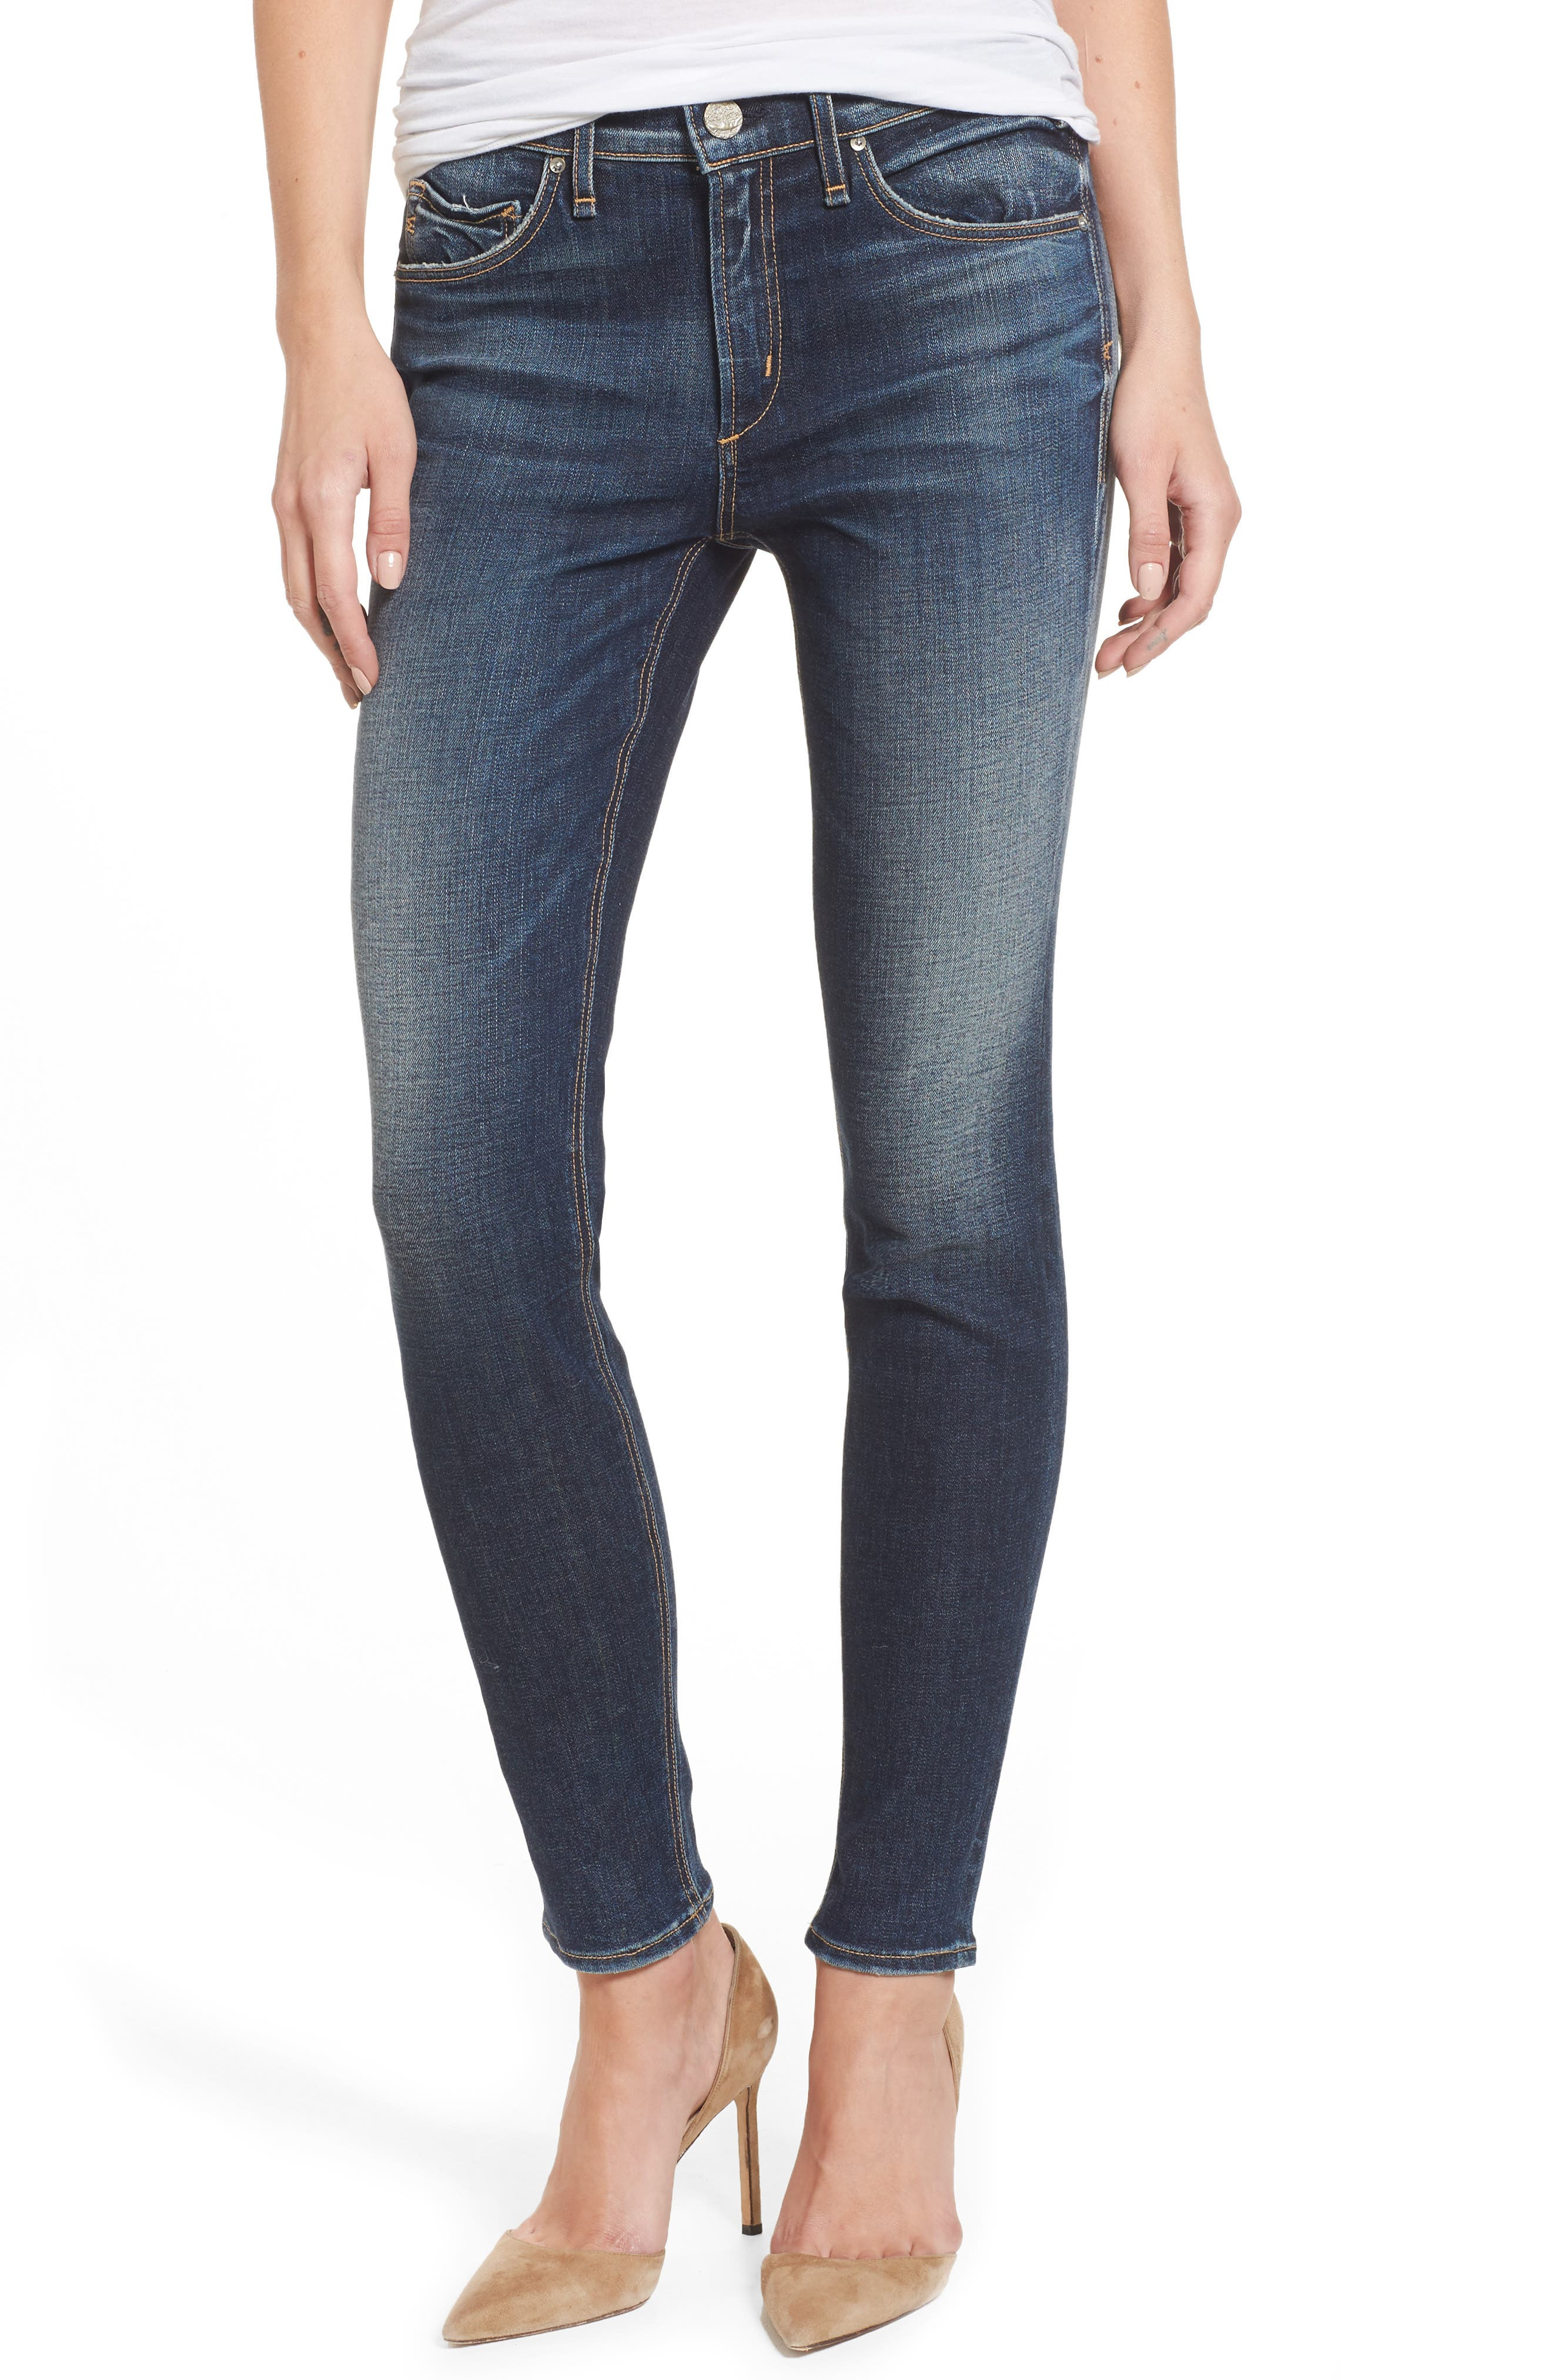 Alternate Image 1 Selected - McGuire Newton High Waist Skinny Jeans (One Thousand Suns)